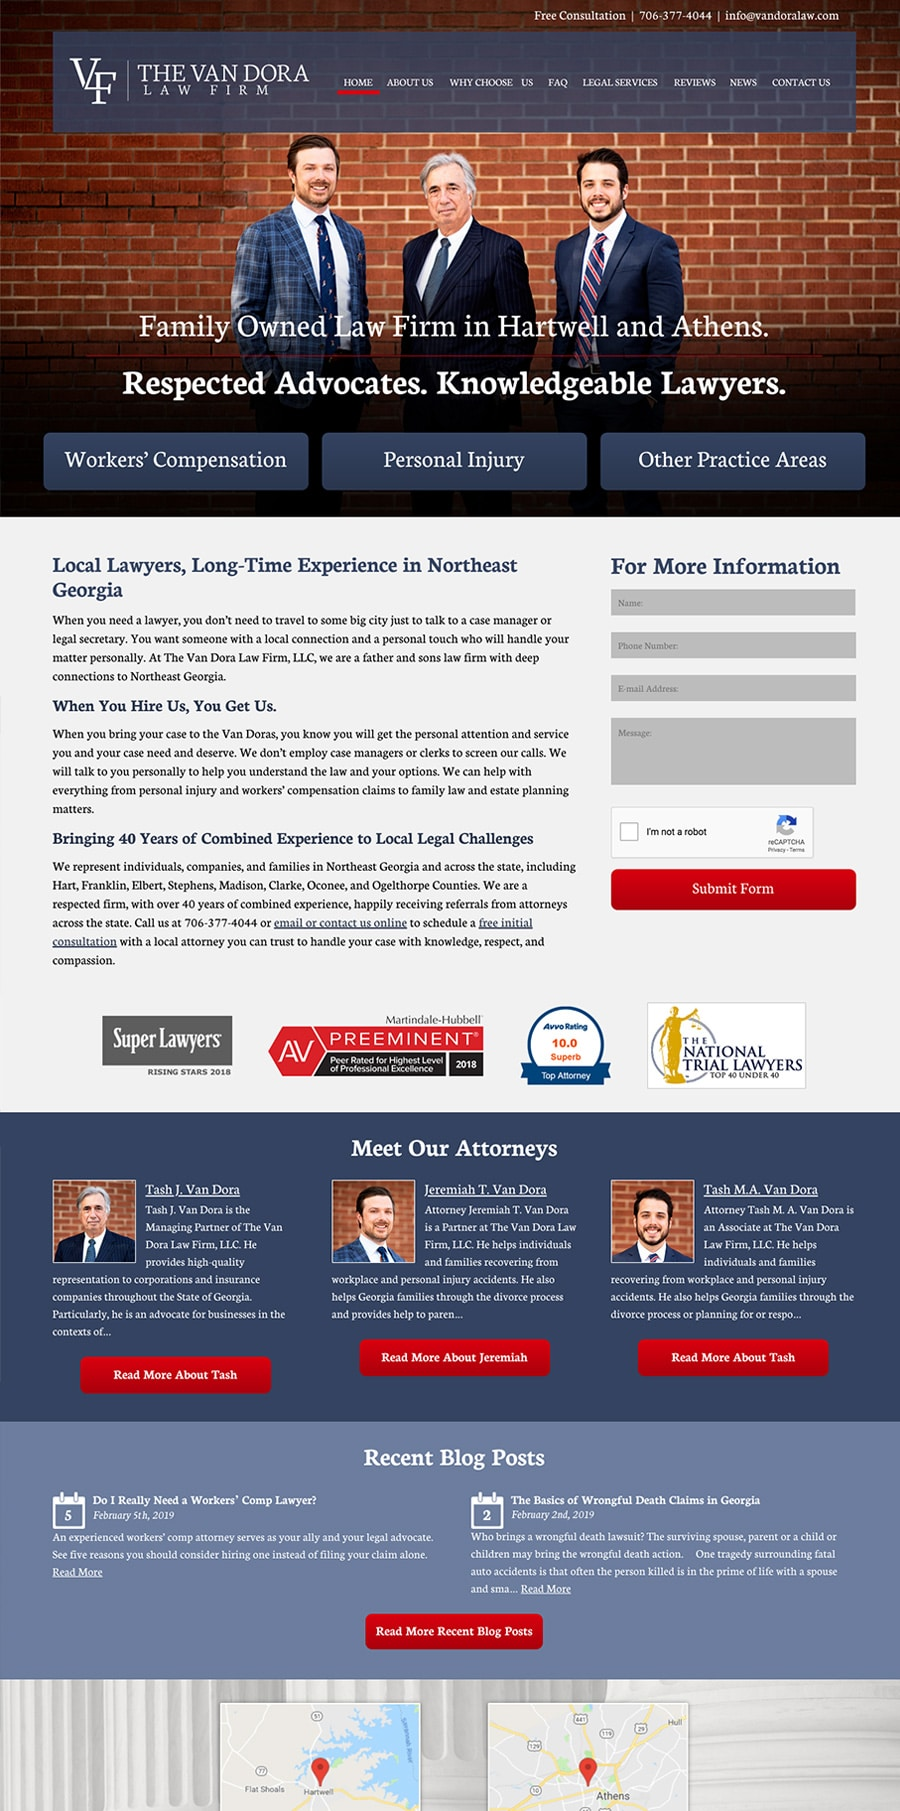 Law Firm Website for The Van Dora Law Firm